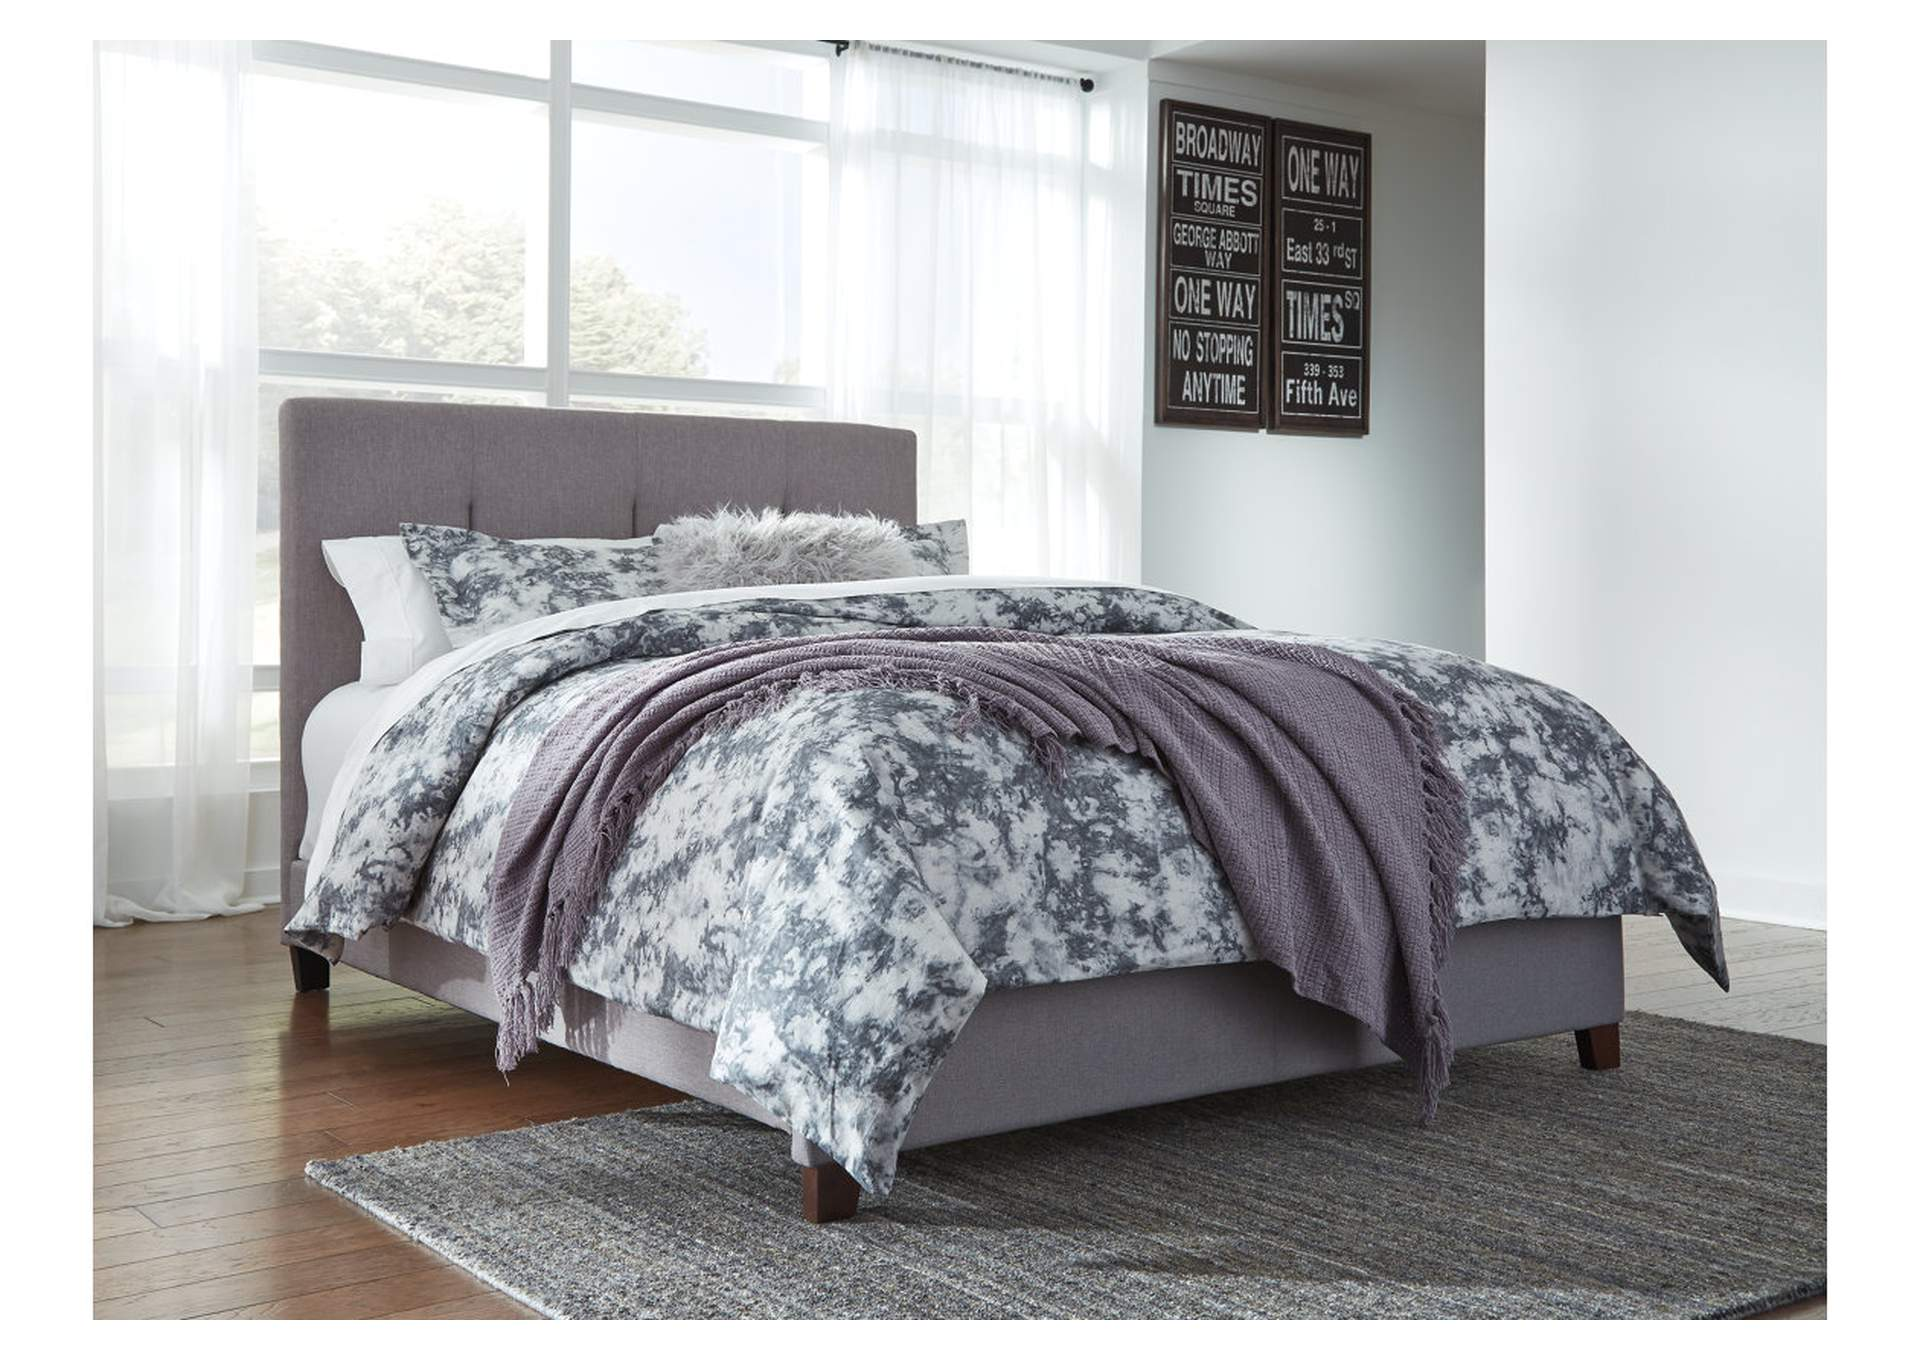 Dolante Gray Queen Upholstered Platform Bed,Signature Design By Ashley